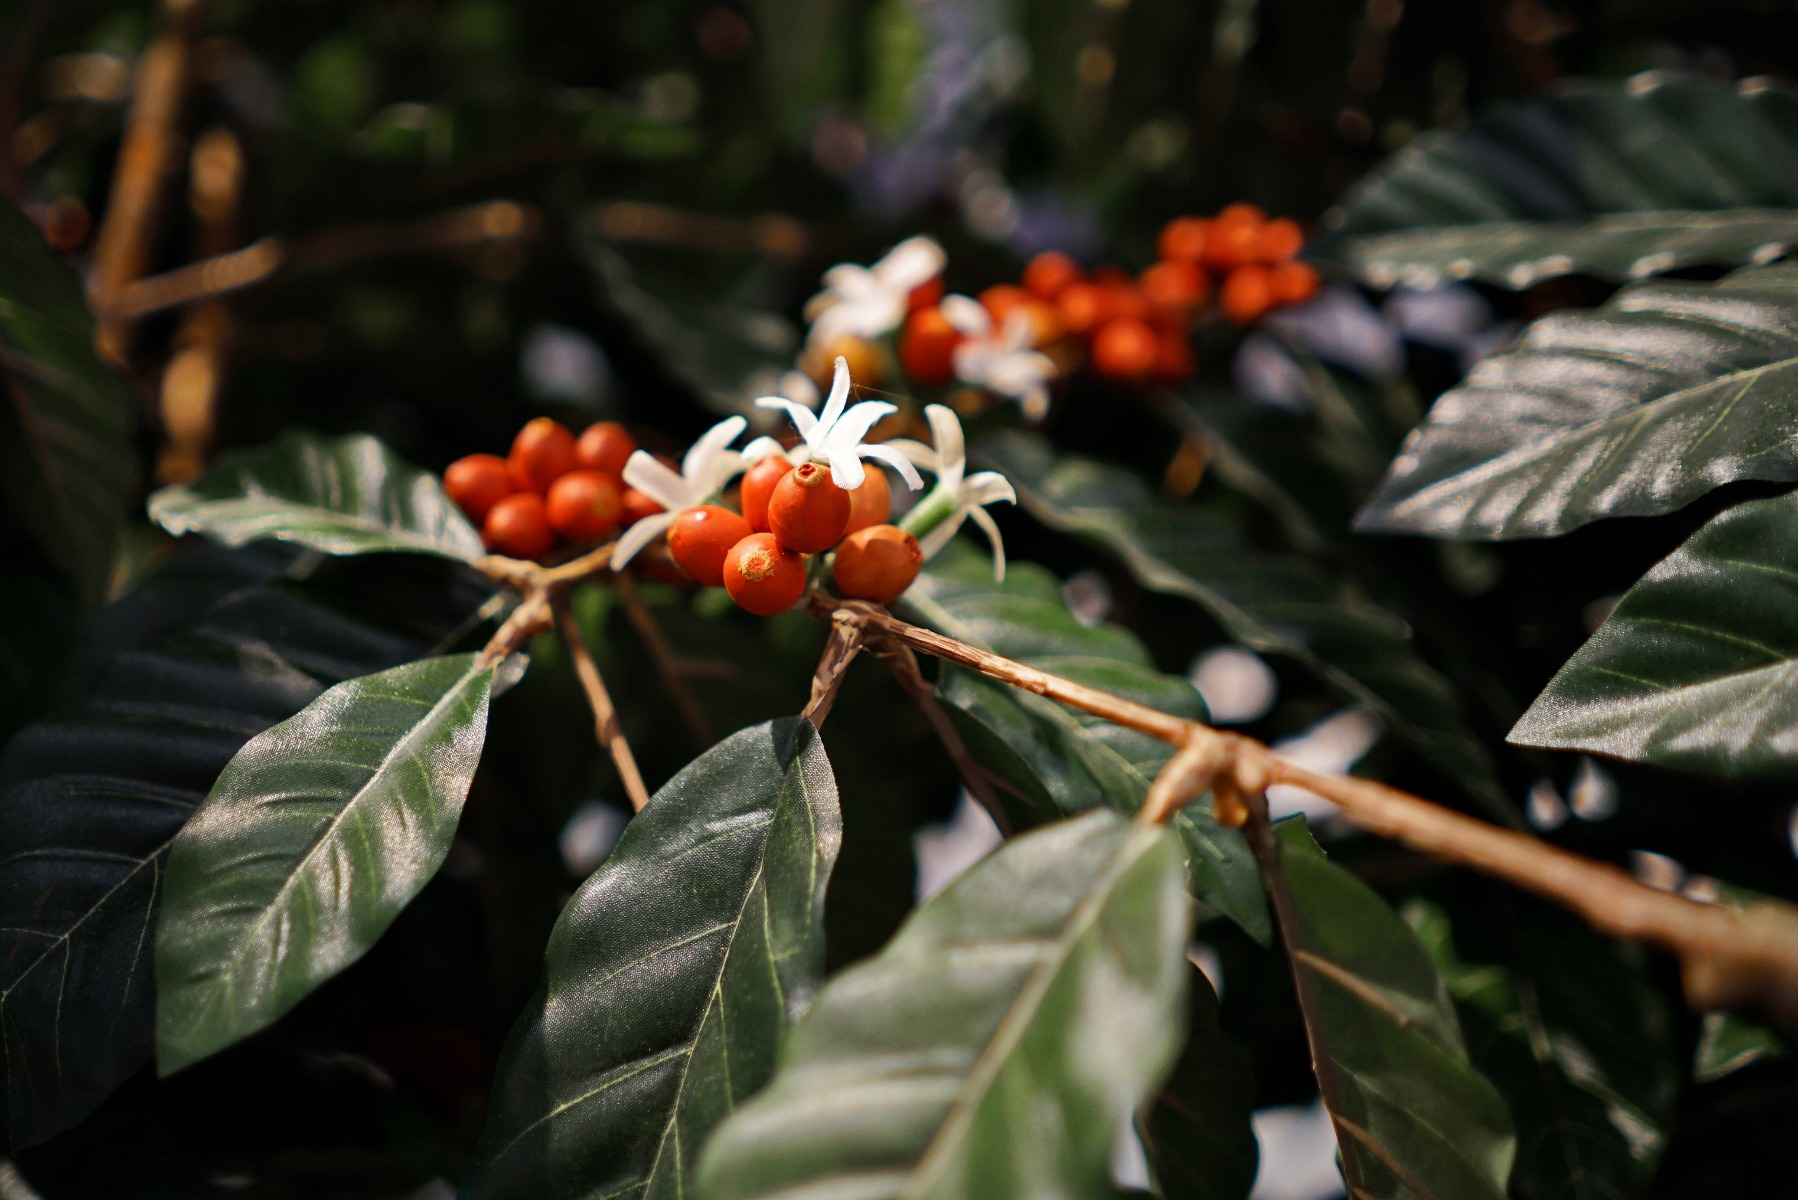 It smells like orange blossom and produces fruits called cherries: this is all there is to know about the coffee plant